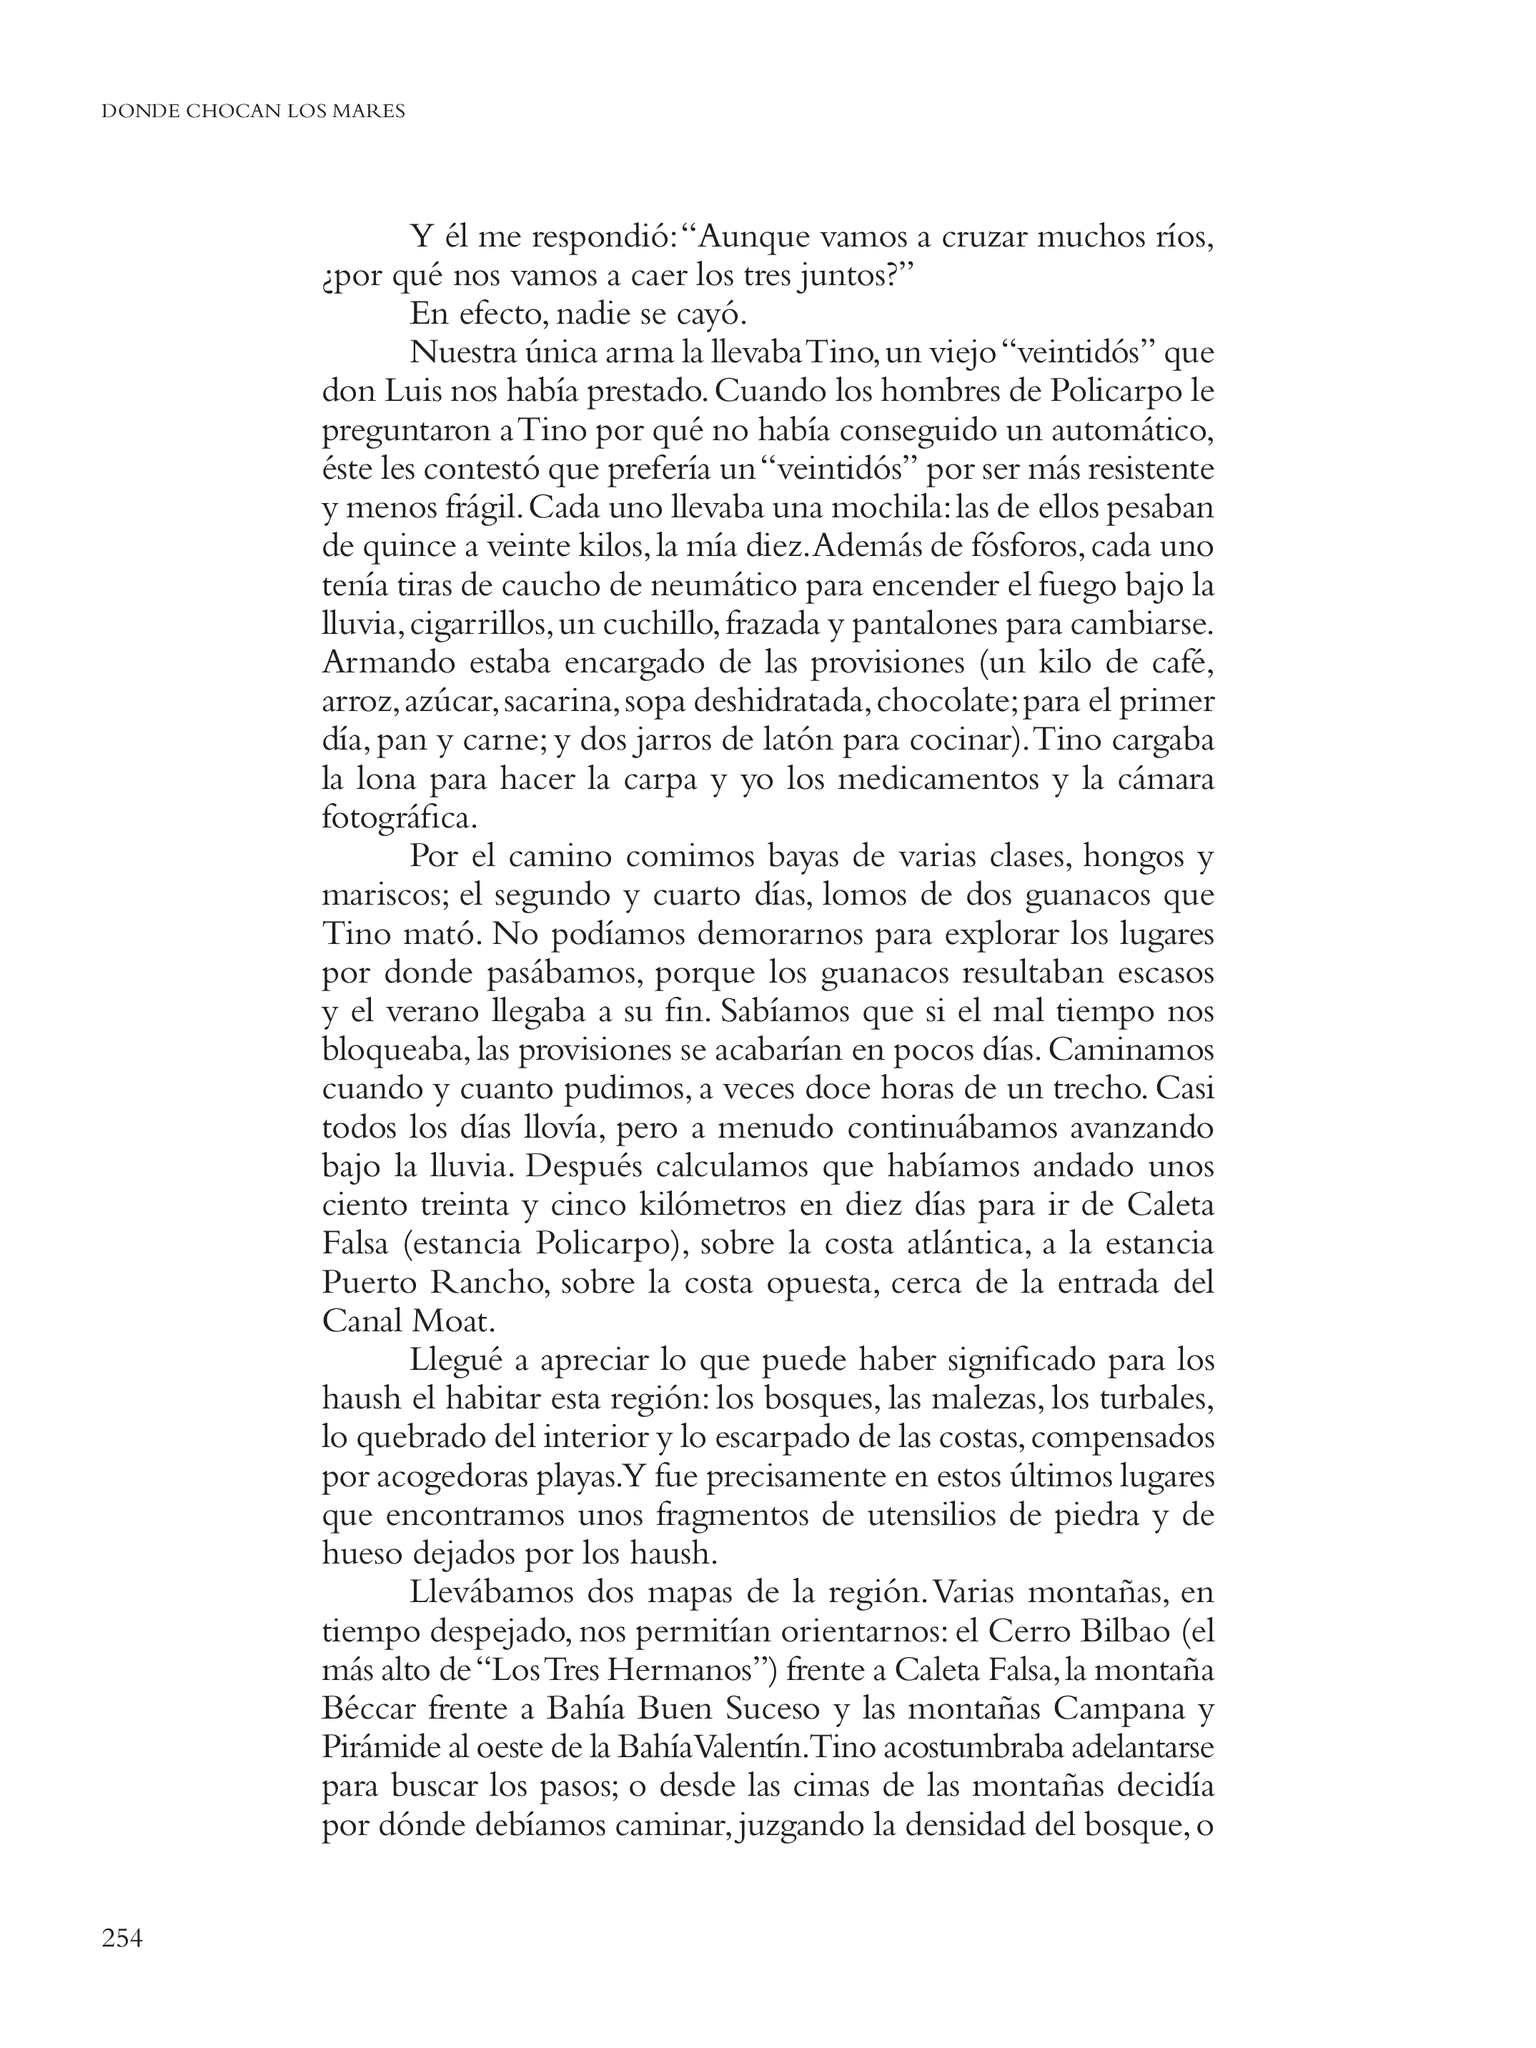 Page 254